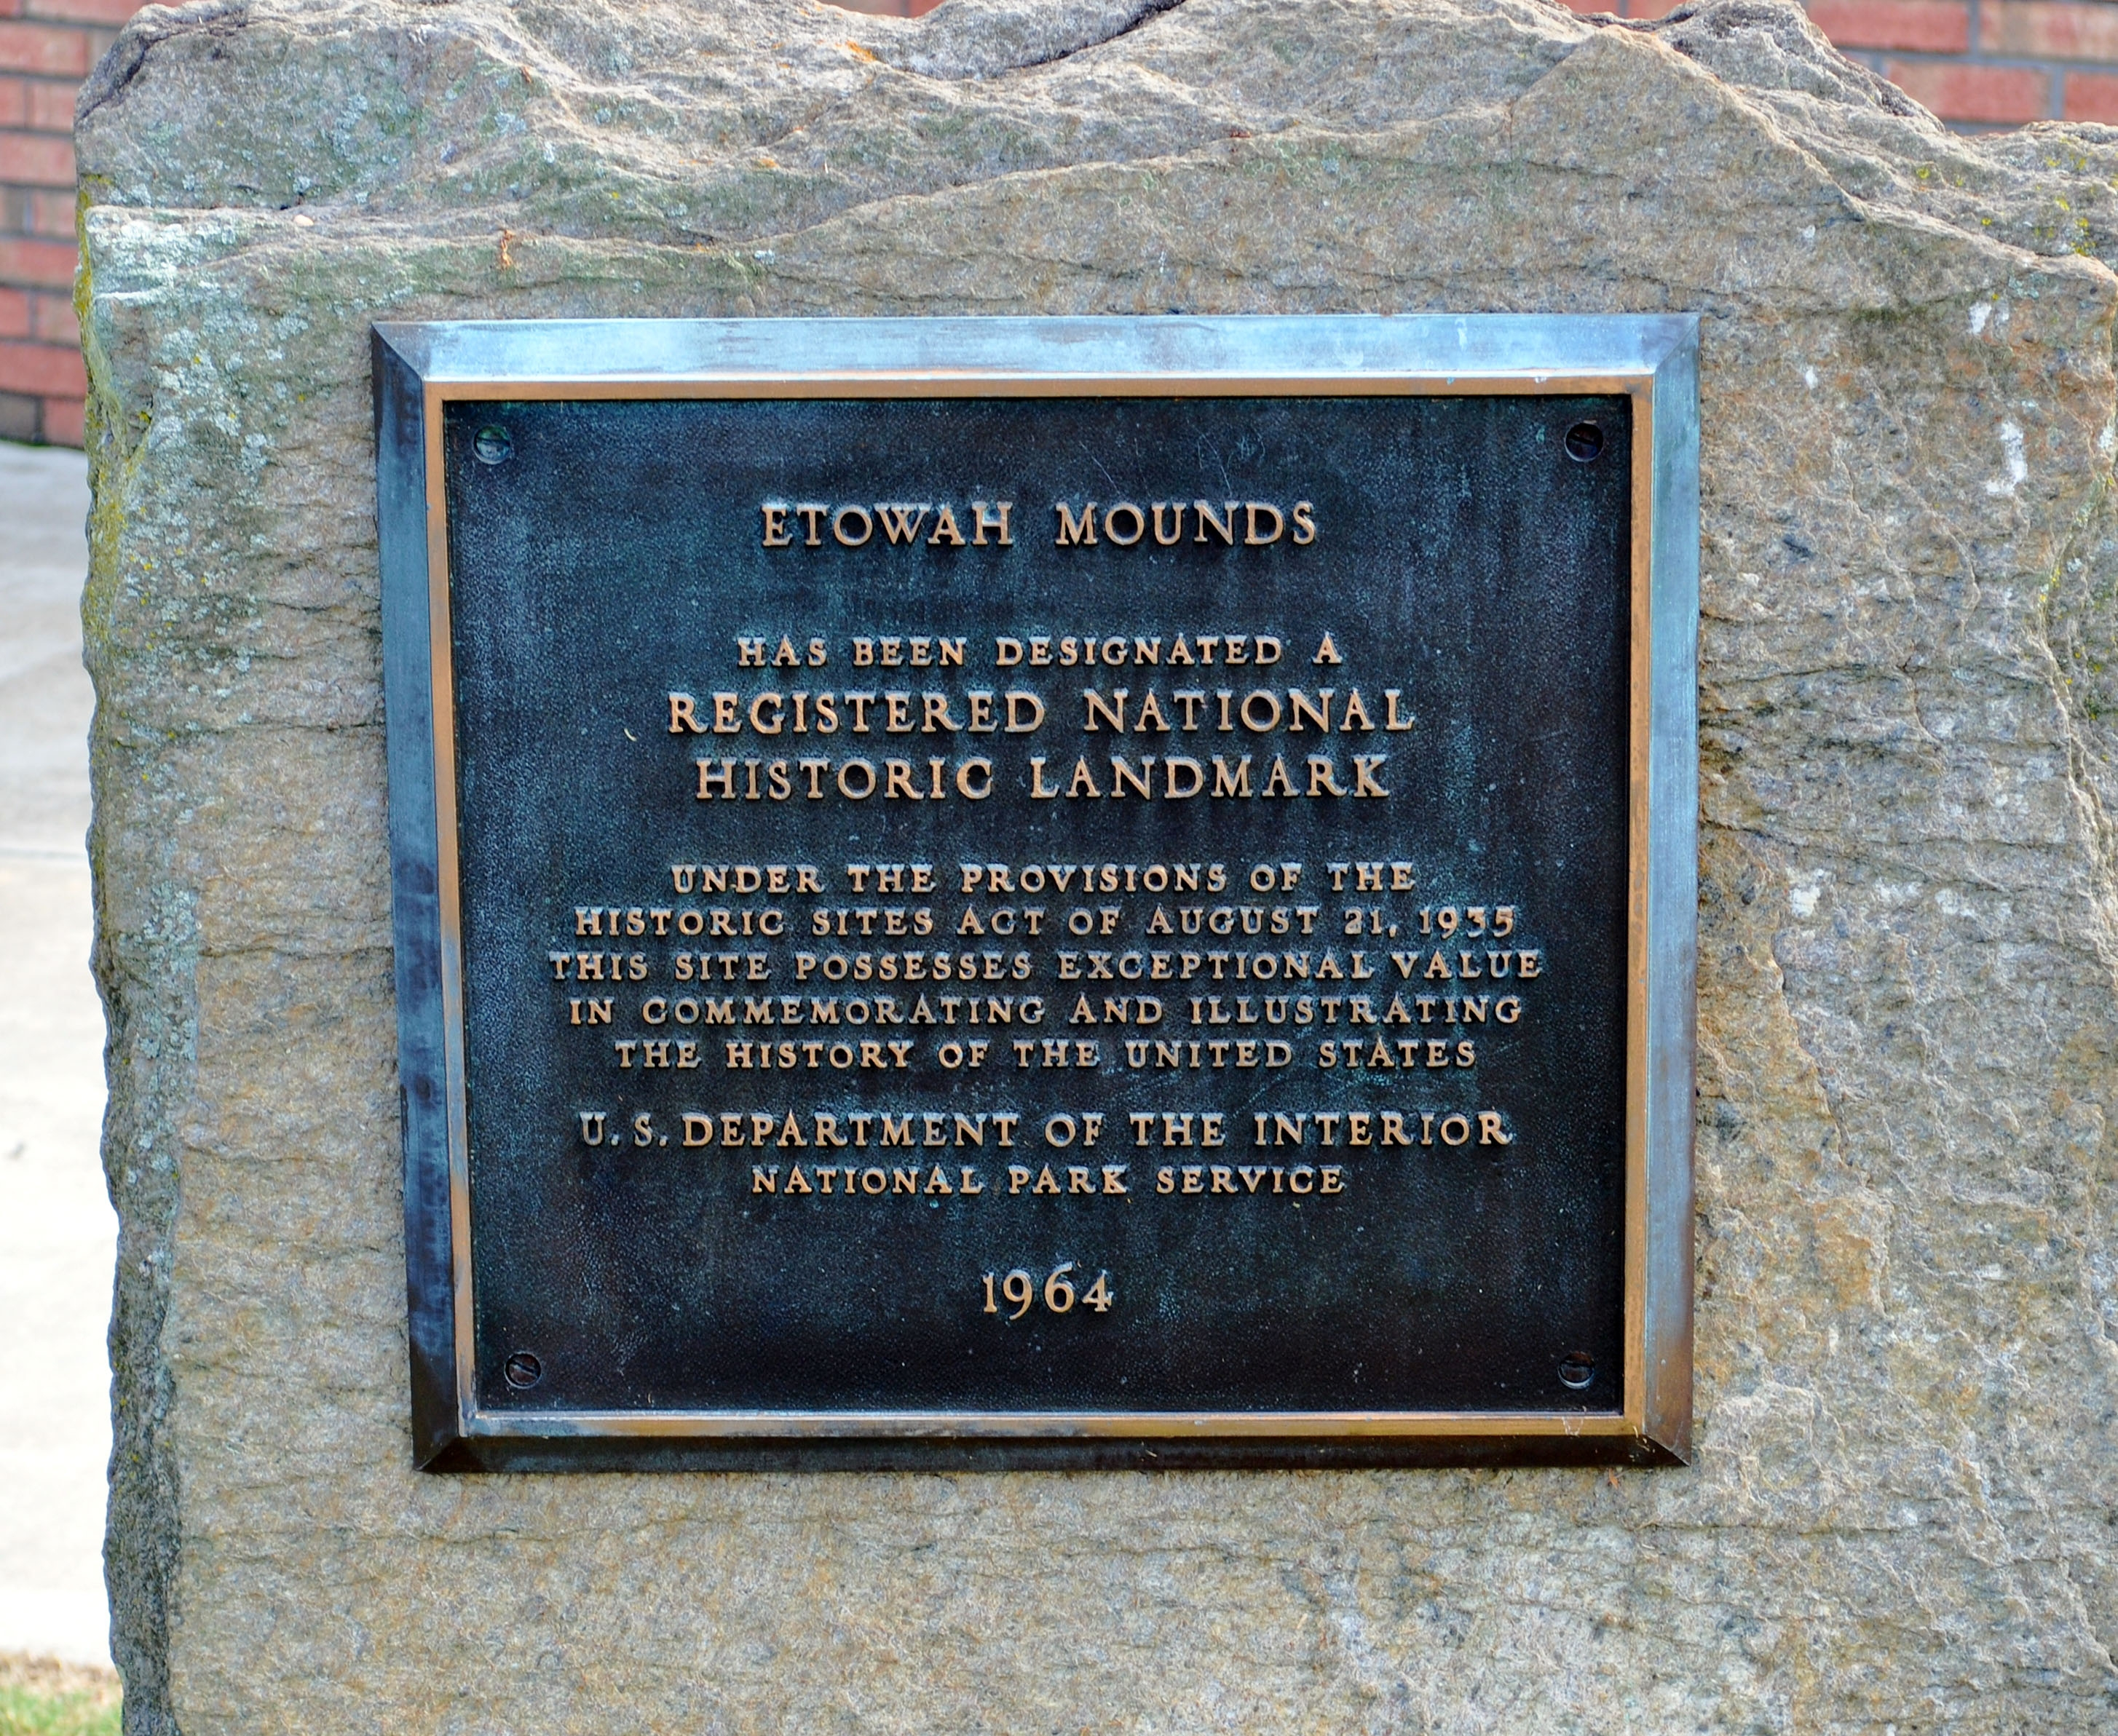 Etowah Mounds National Historic Landmark Plaque